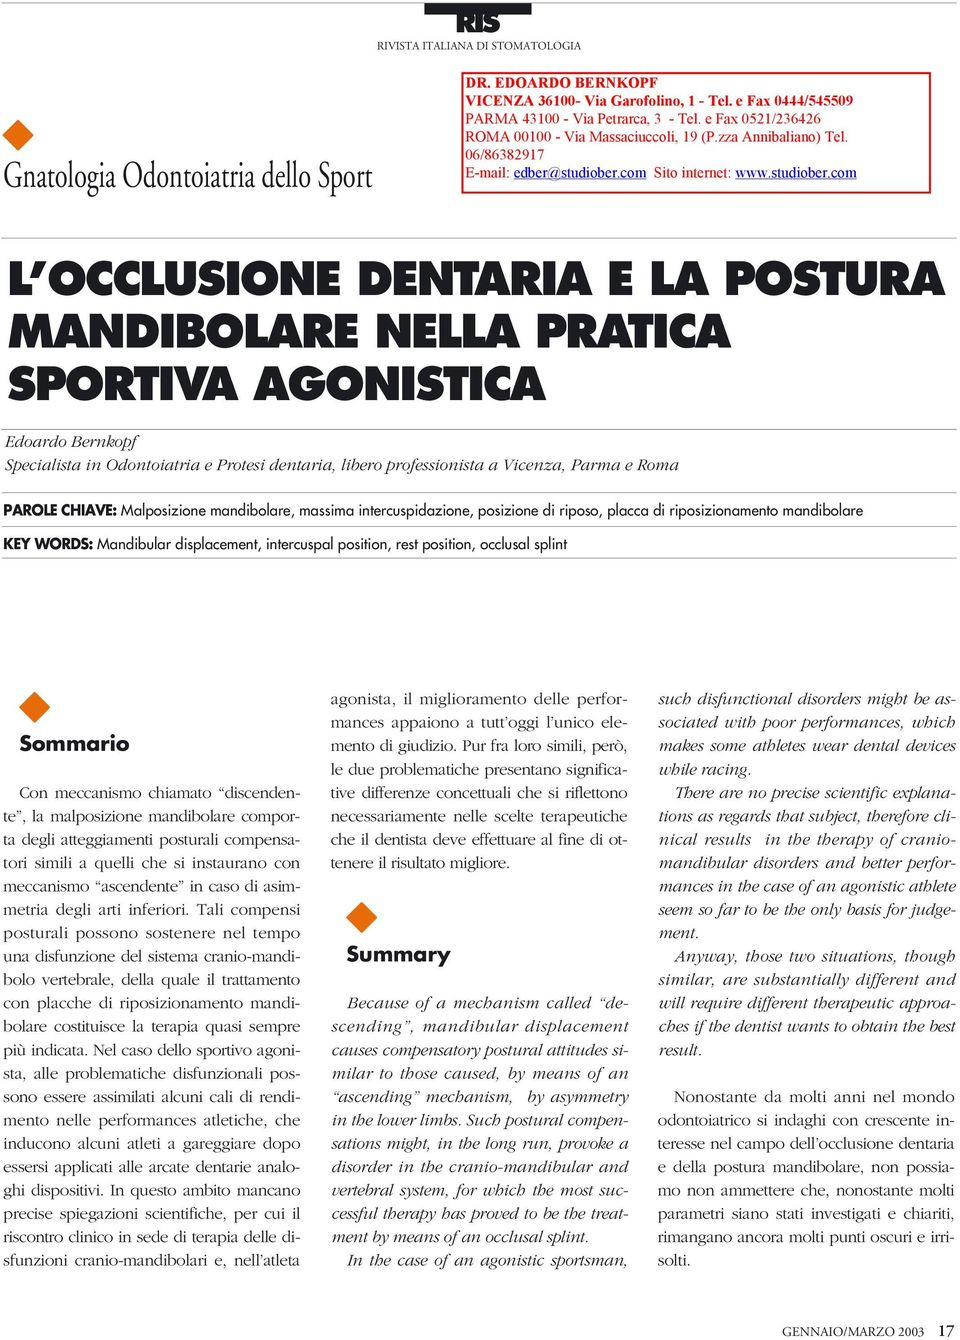 displacement, intercuspal position, rest position, occlusal splint Sommario Con meccanismo chiamato discendente, la malposizione mandibolare comporta degli atteggiamenti posturali compensatori simili